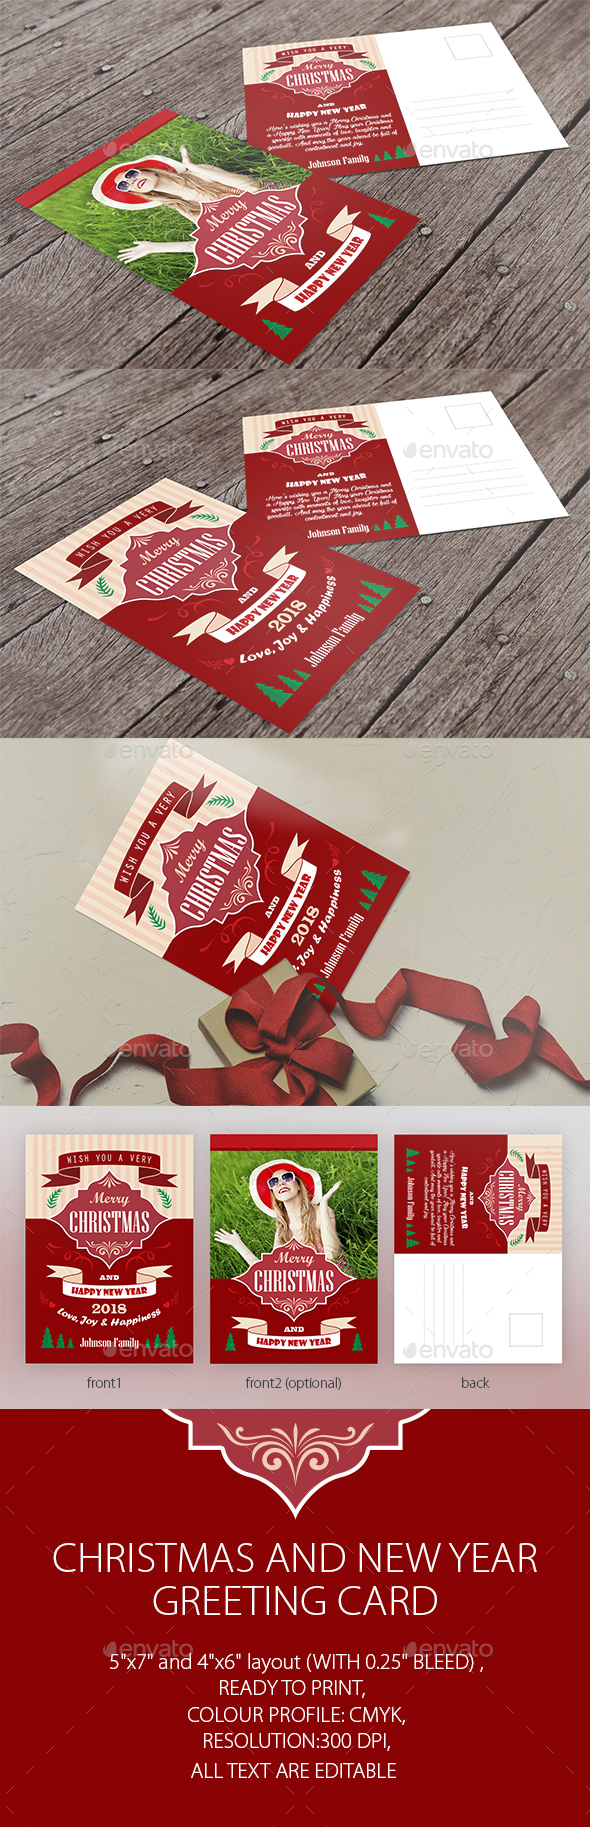 Christmas Greeting Card Vector Illustration - Christmas Greeting Cards